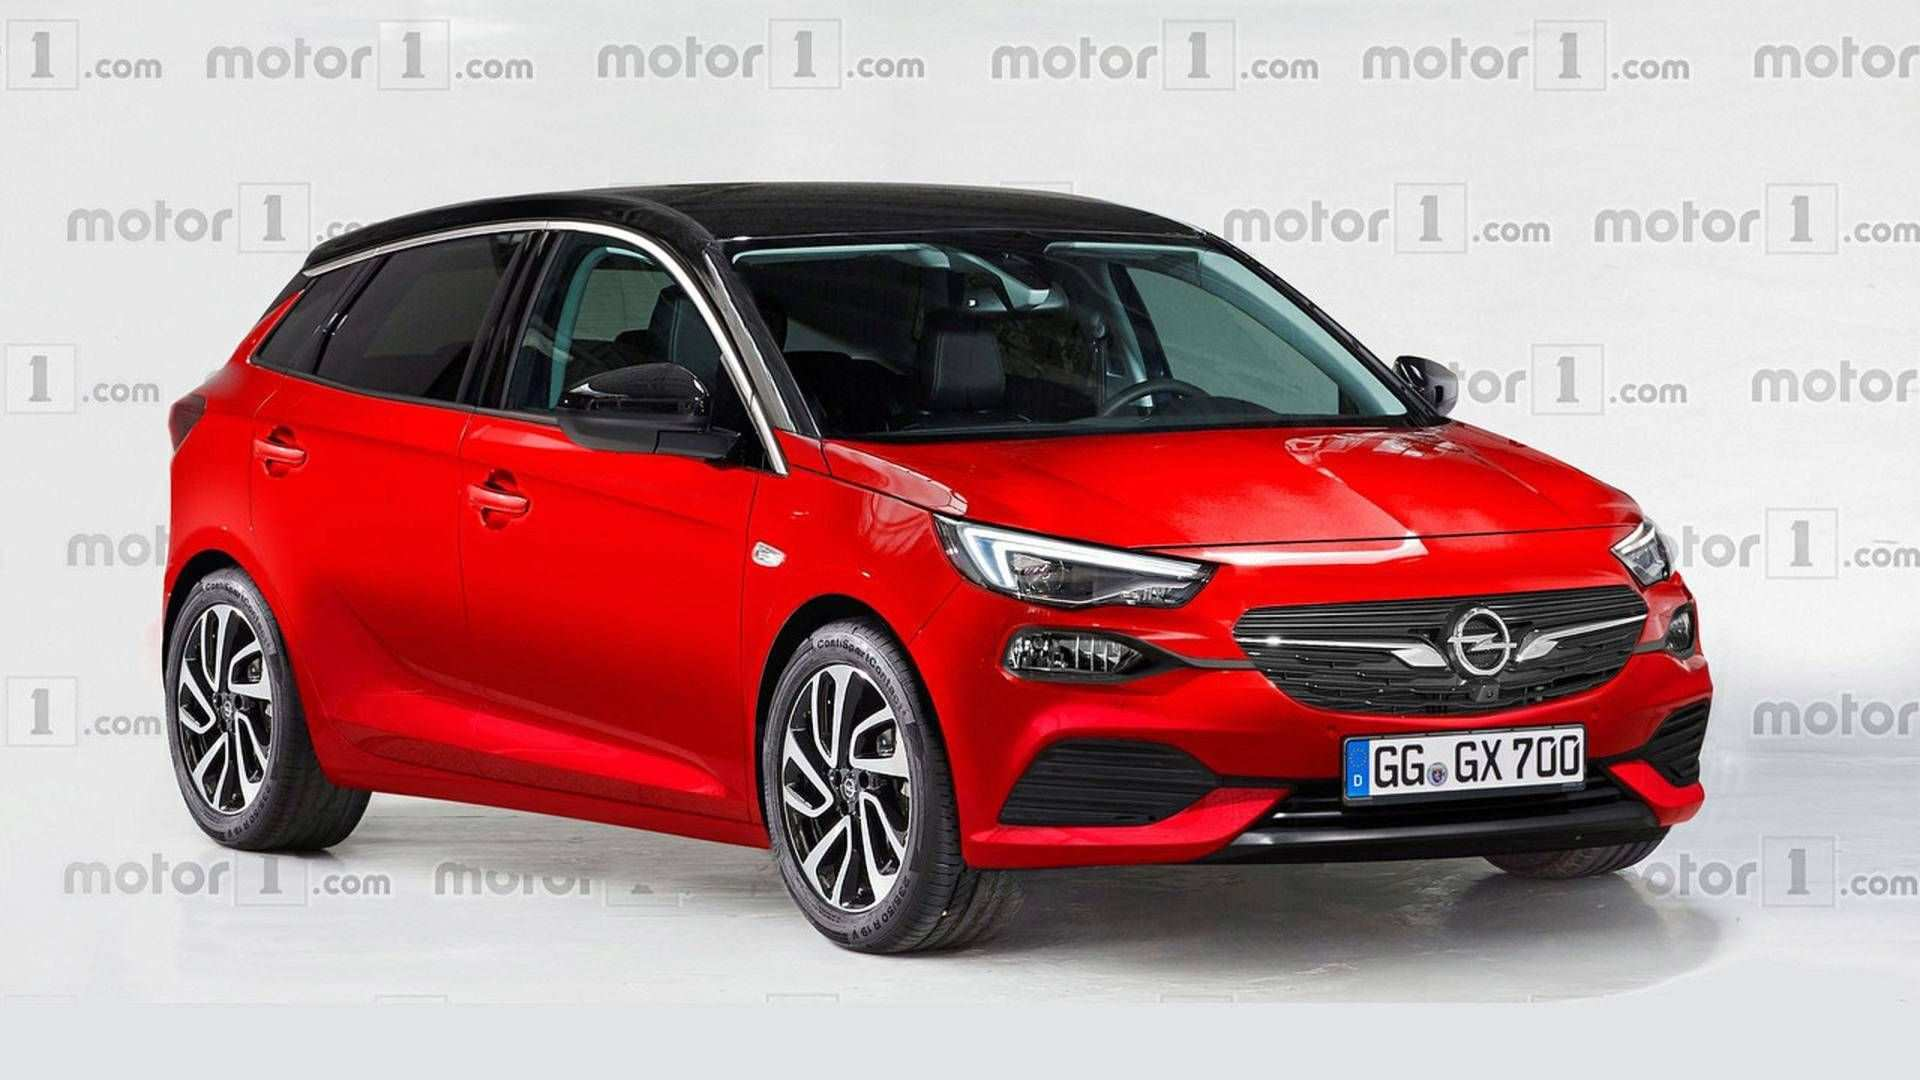 94 The 2020 Opel Corsa 2018 Exterior and Interior by 2020 Opel Corsa 2018